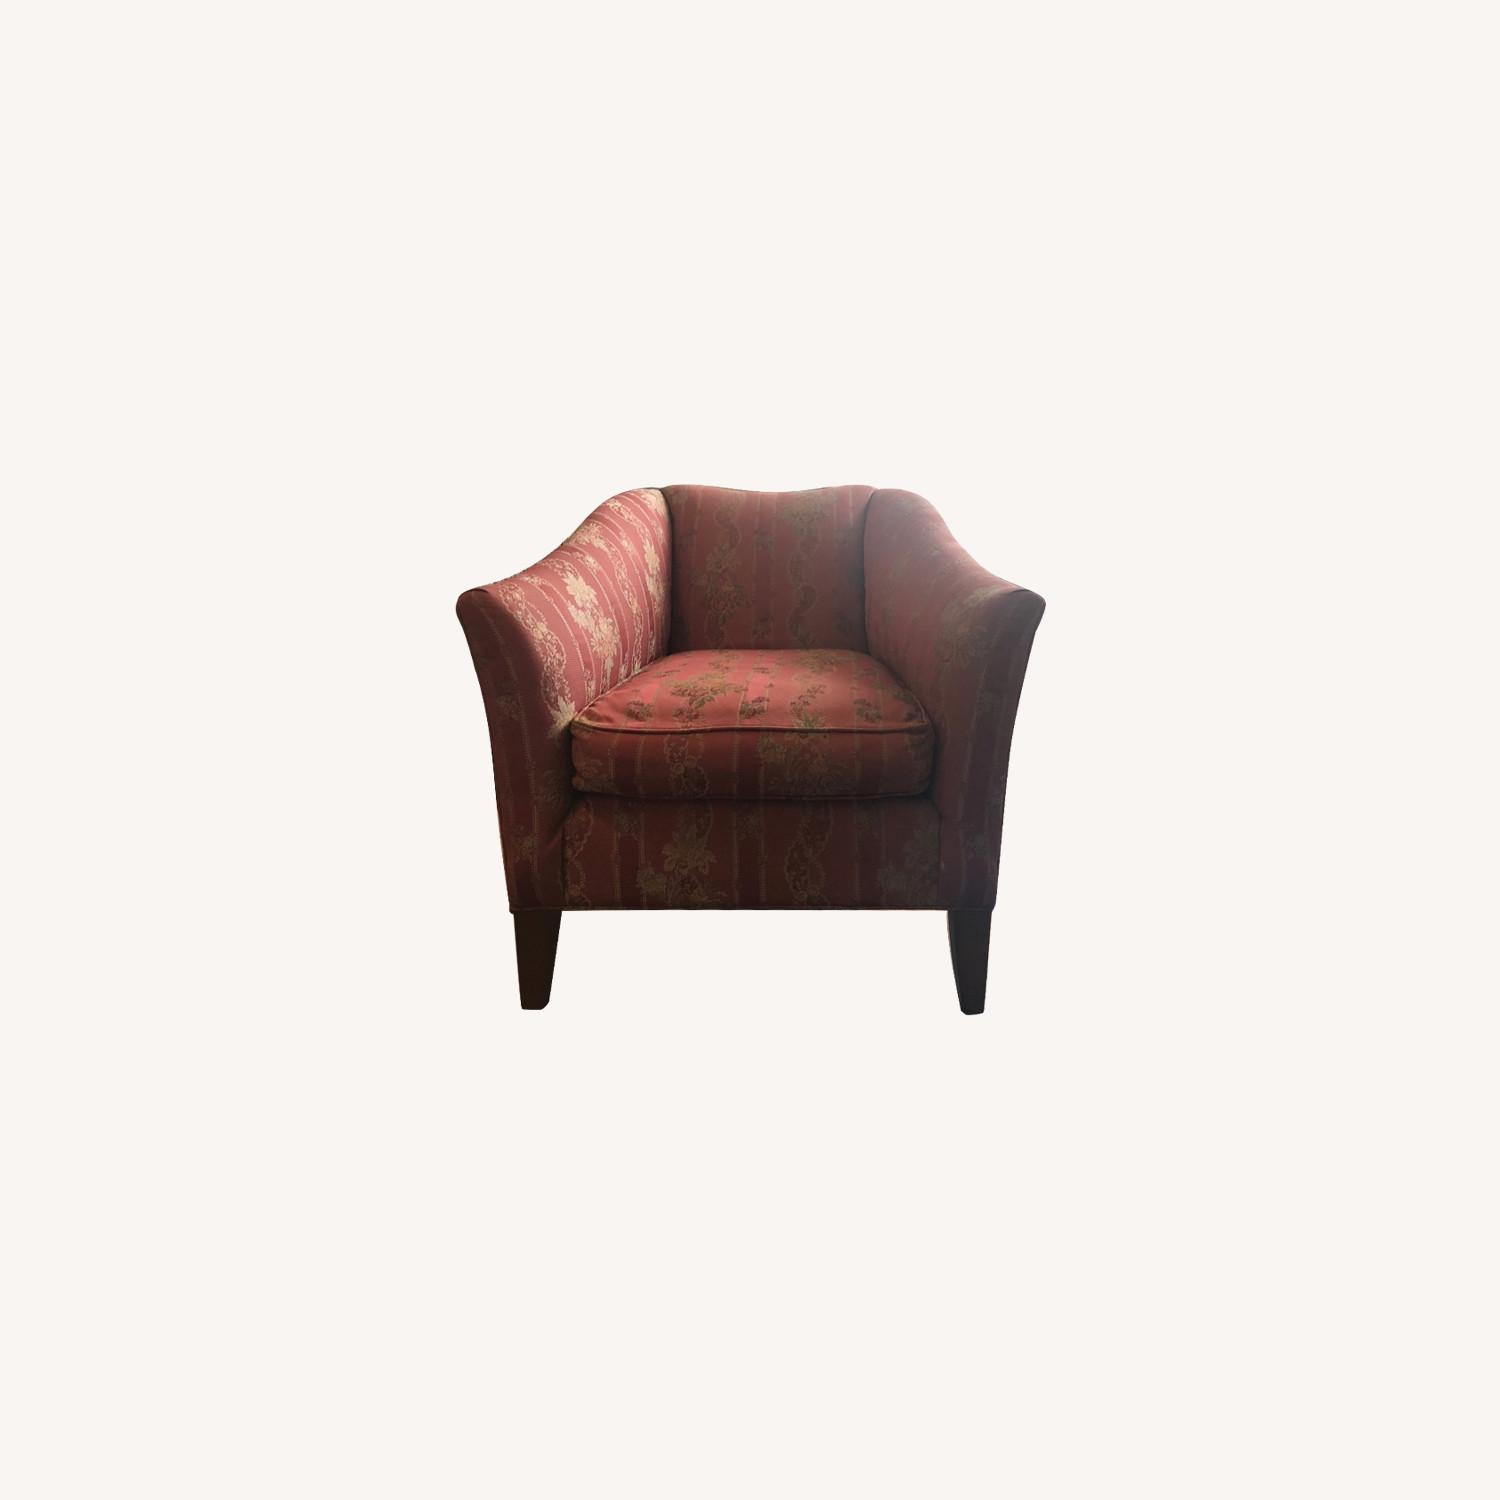 Ethan Allen Rose Accent Arm Chair - image-0